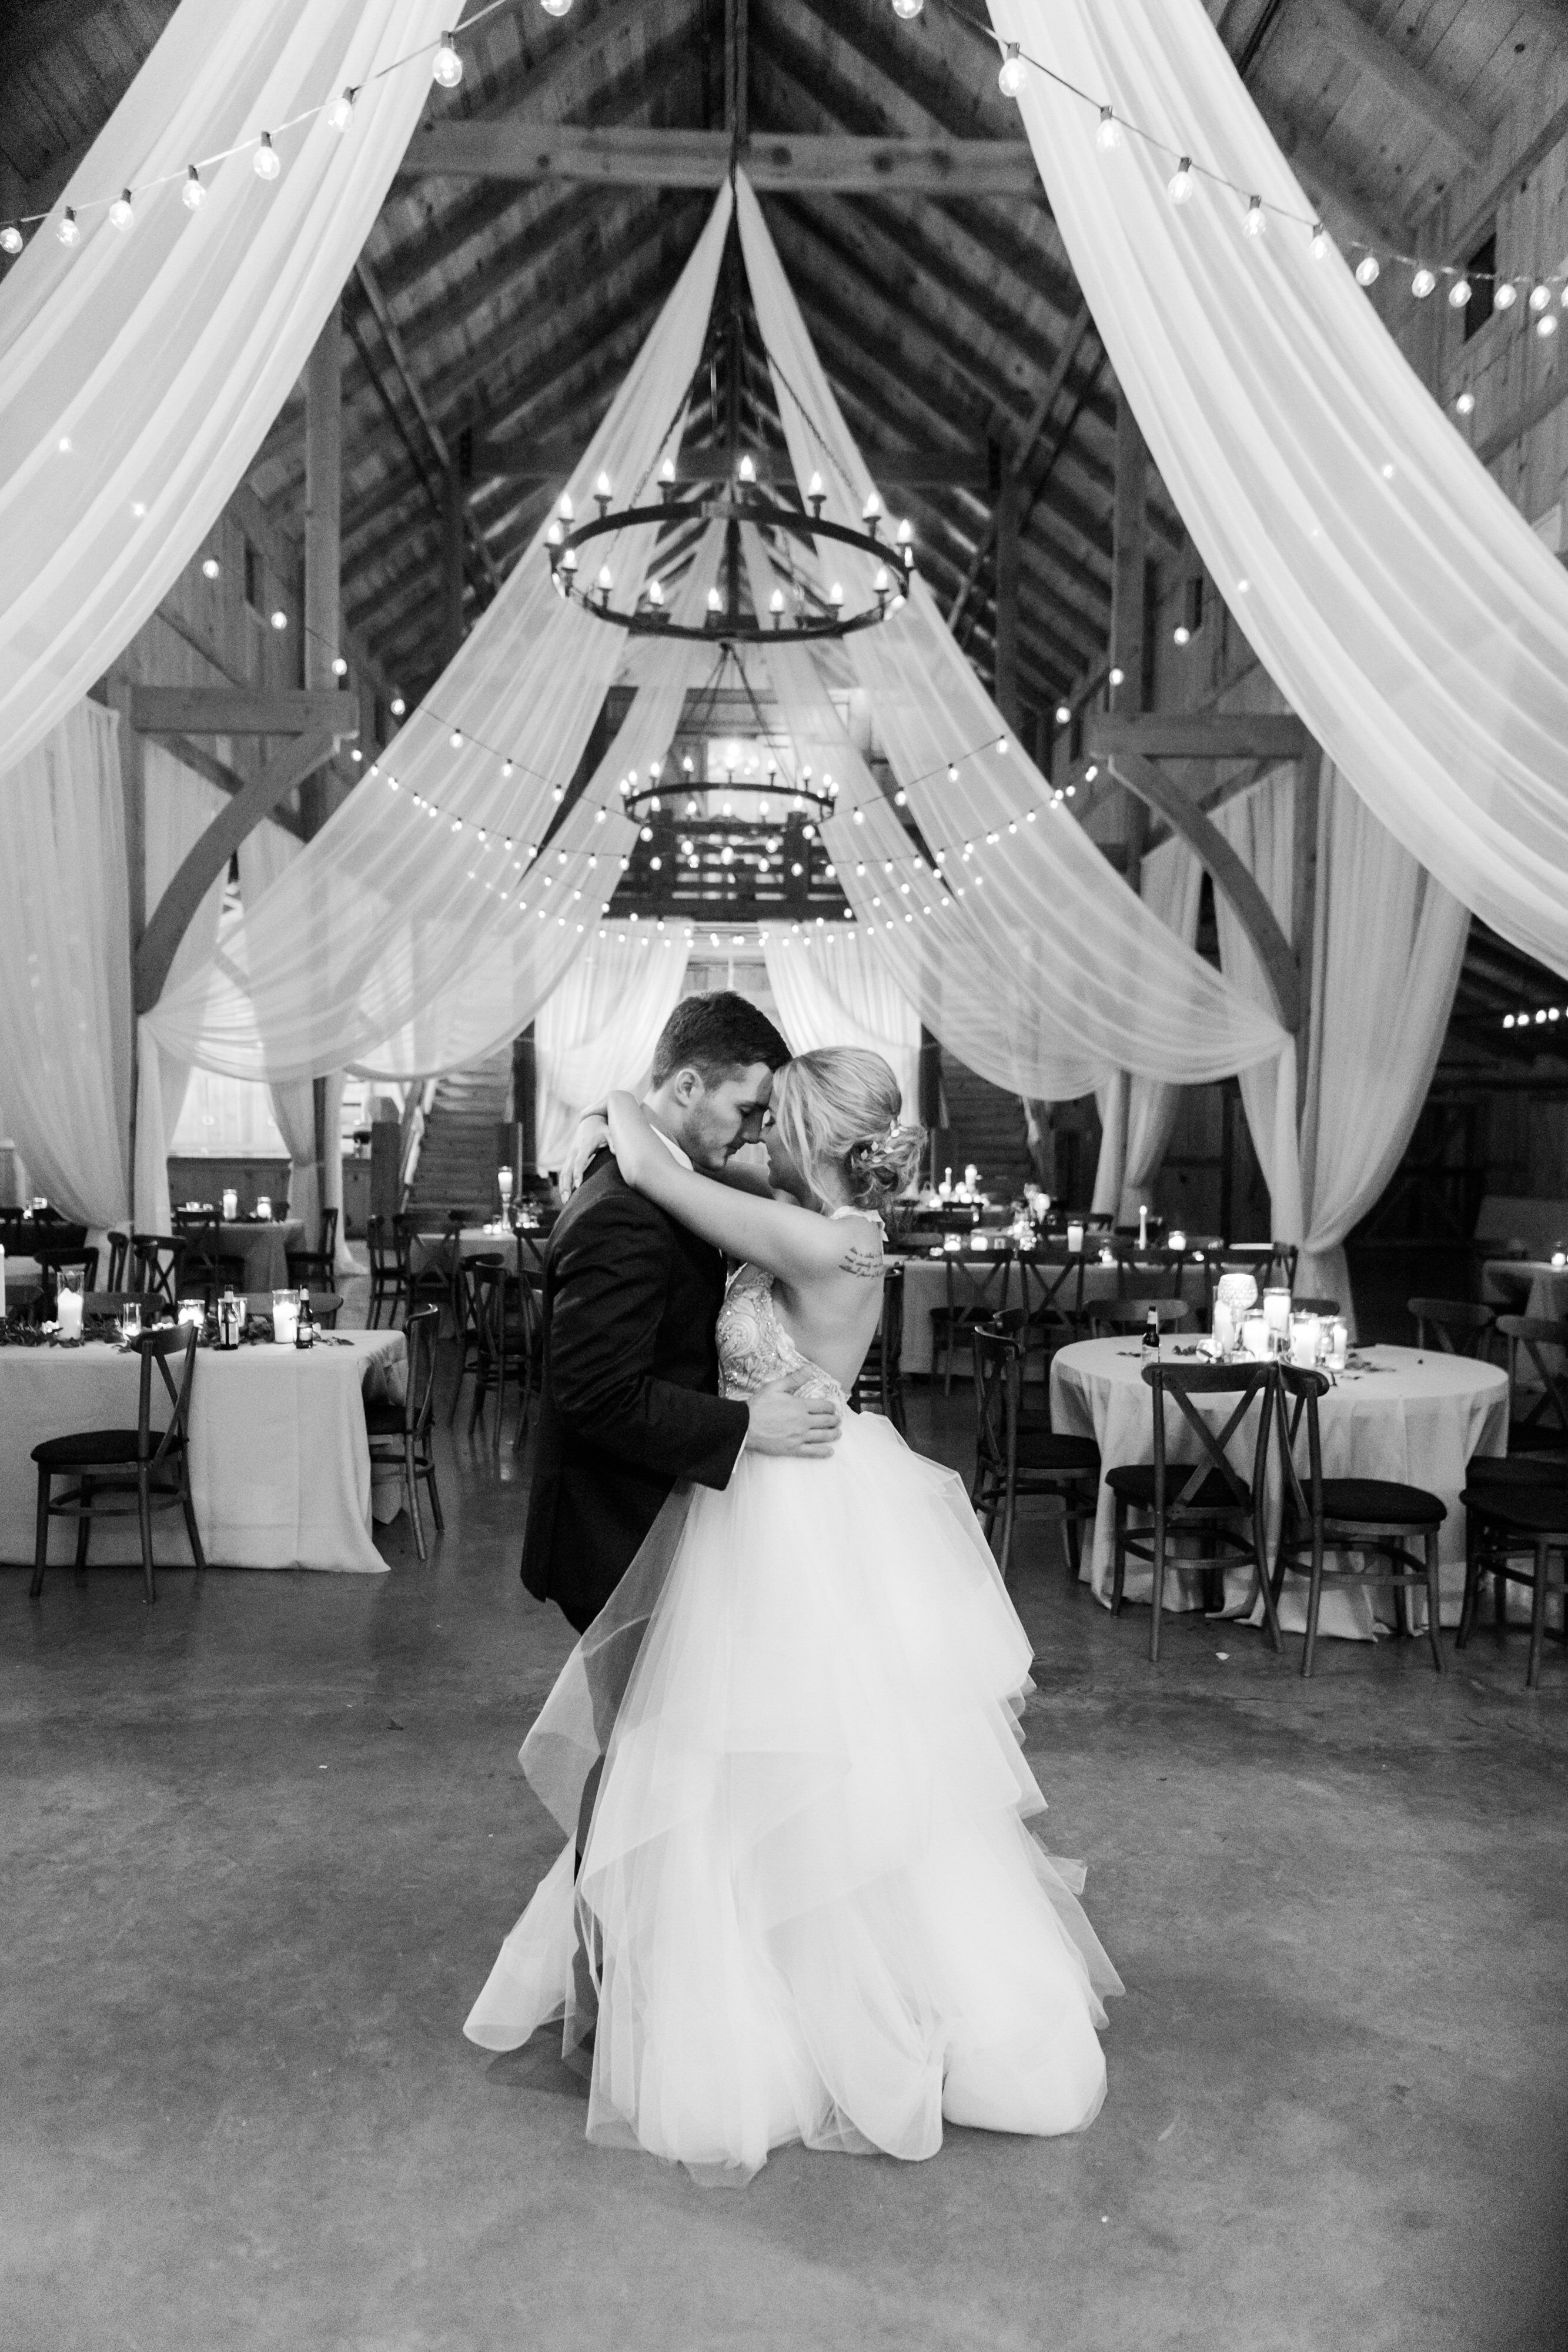 Black And White Wedding Photo Of Bride And Groom At The Venue At